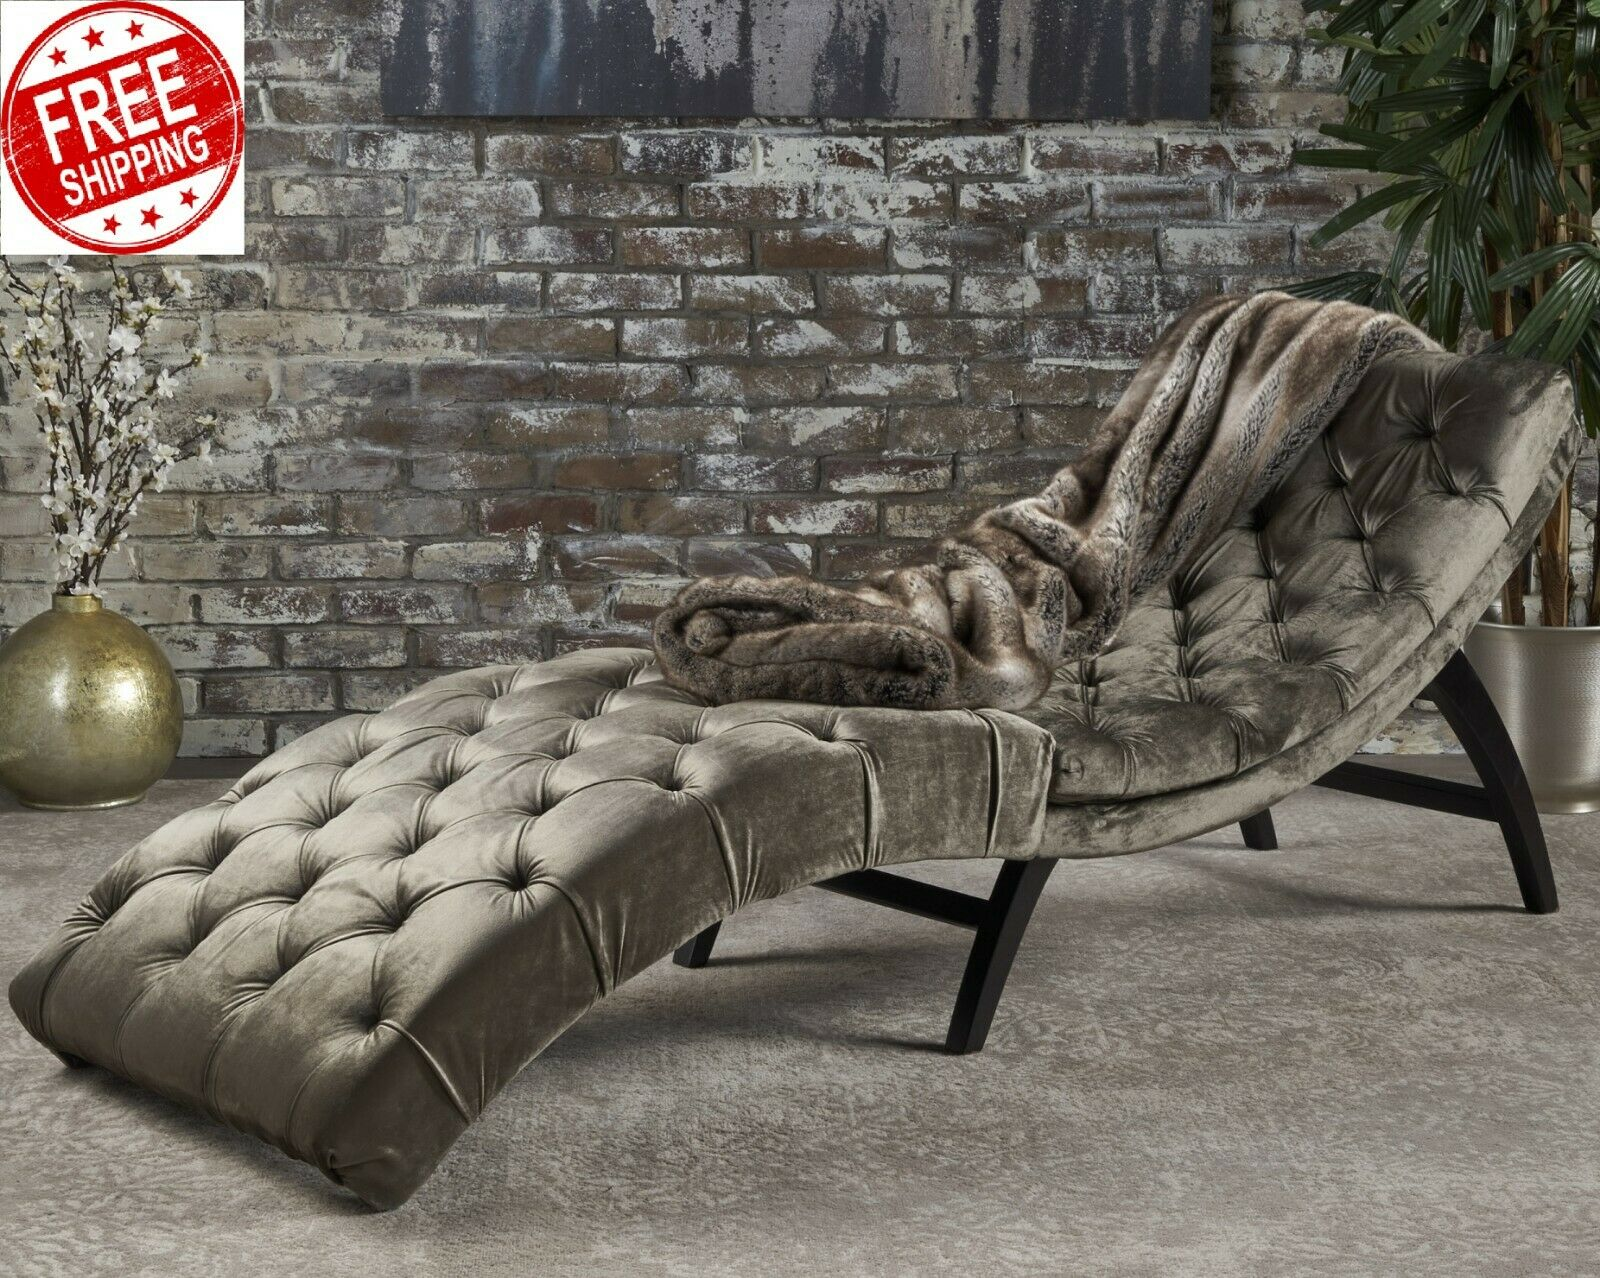 - Indoor Chaise Lounge Chair Modern Curved Sofa Living Bedroom